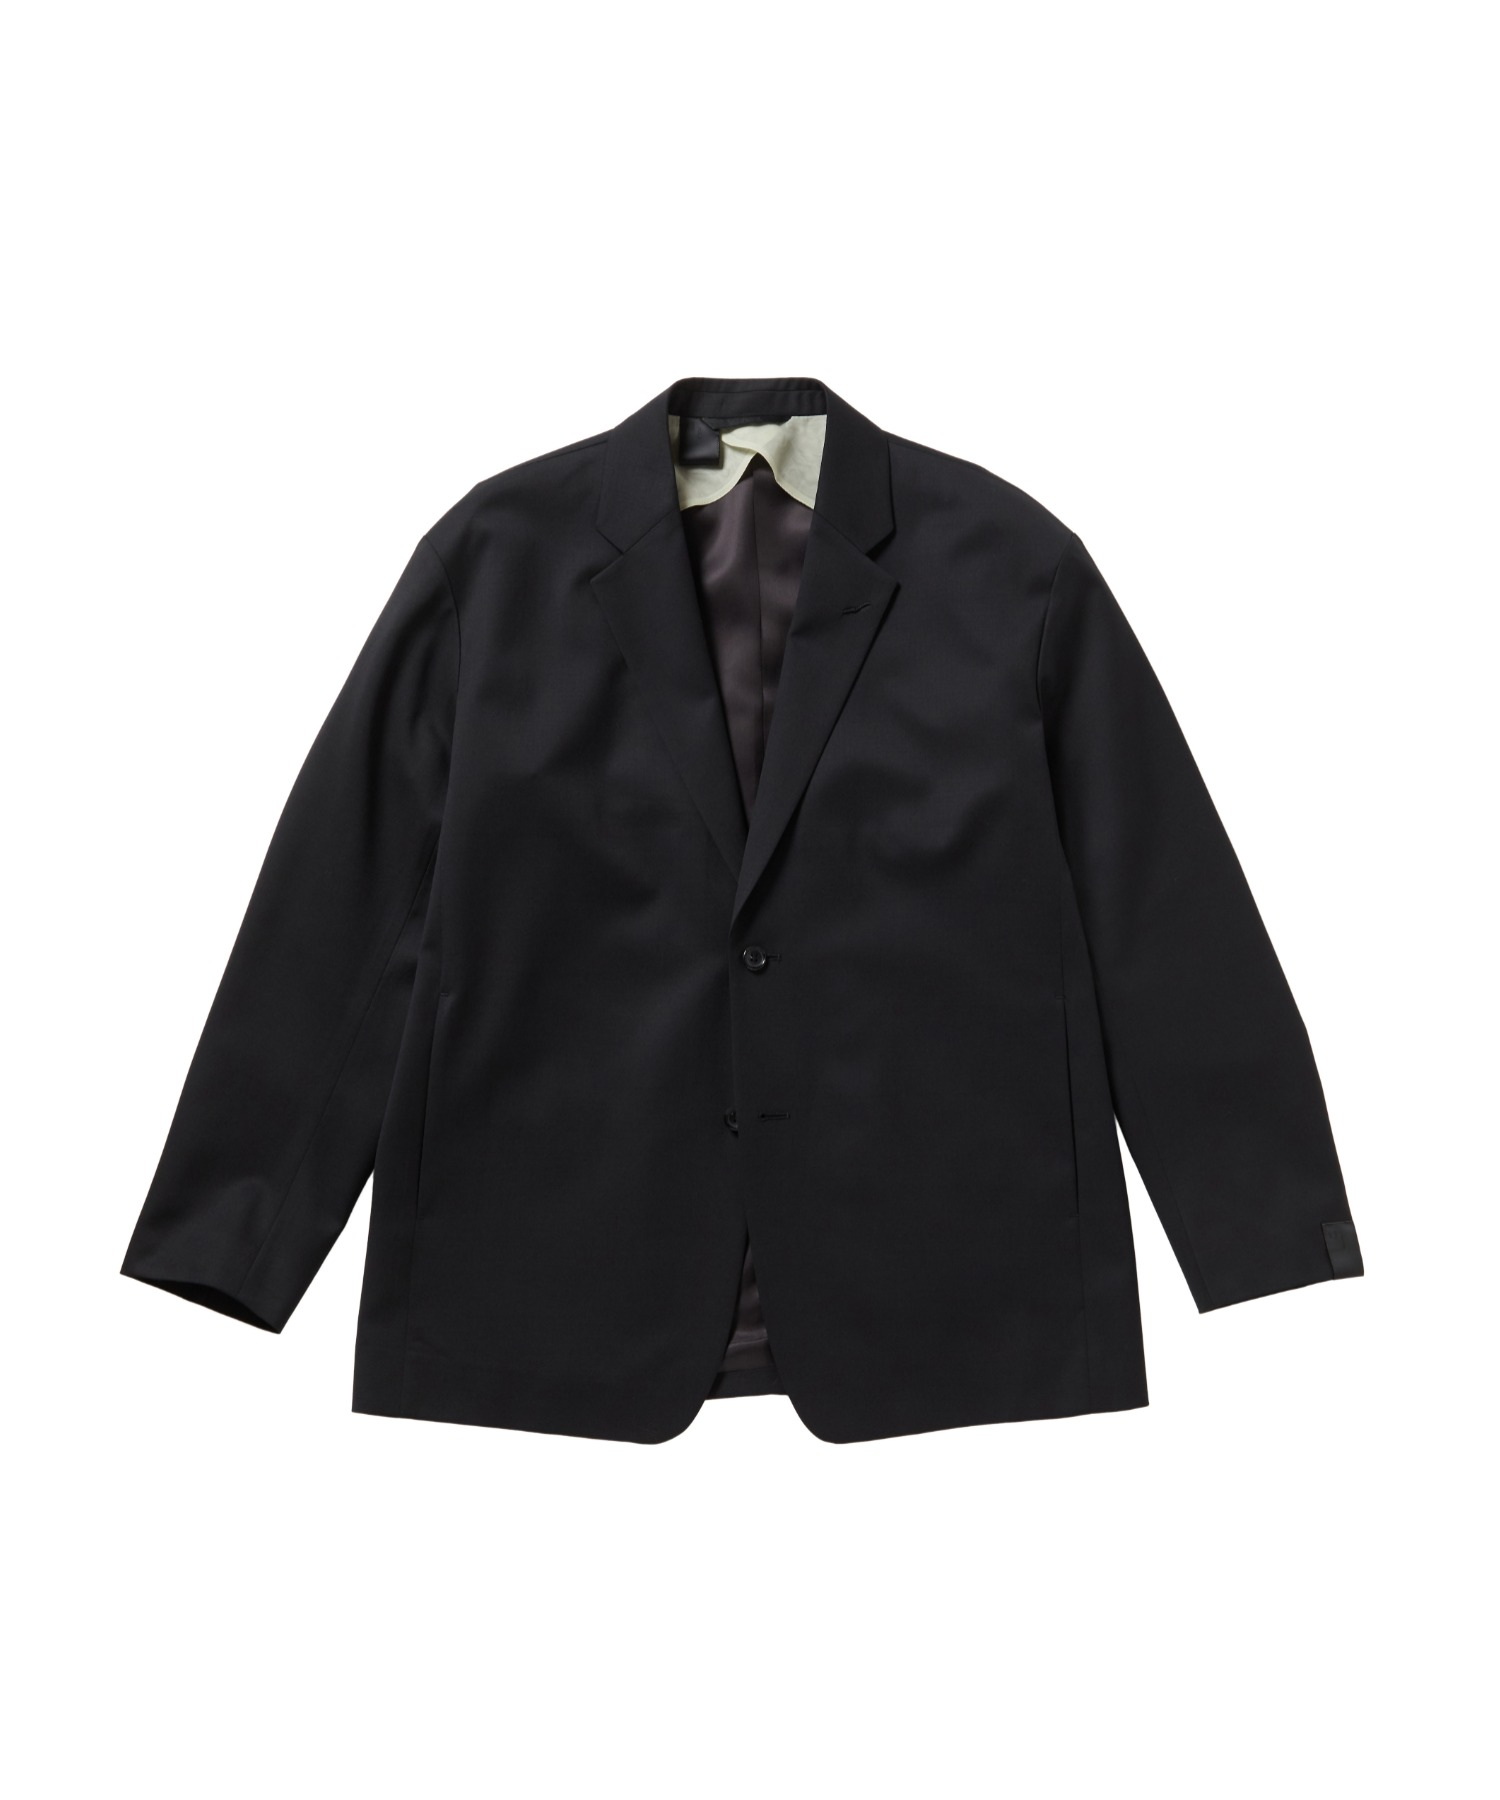 FALL TAILORED JACKET